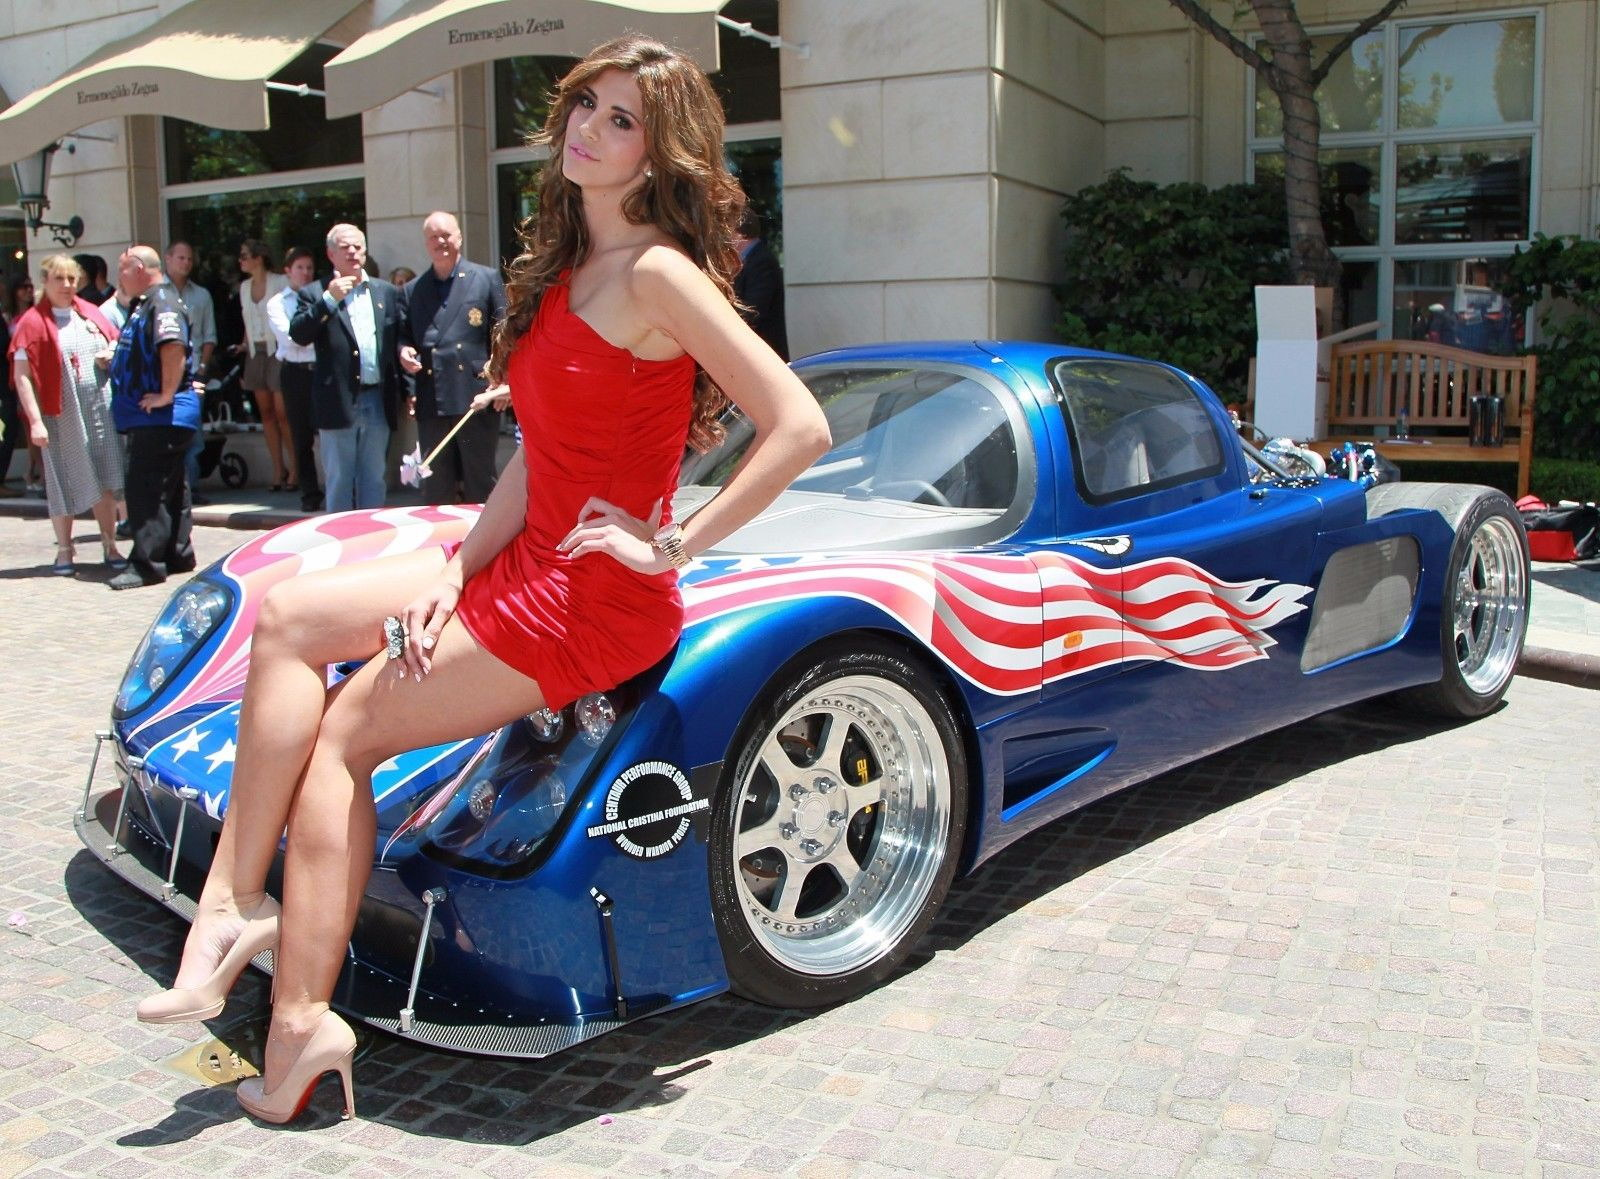 126836 Hot Model on Race Car Decor WALL PRINT POSTER AU